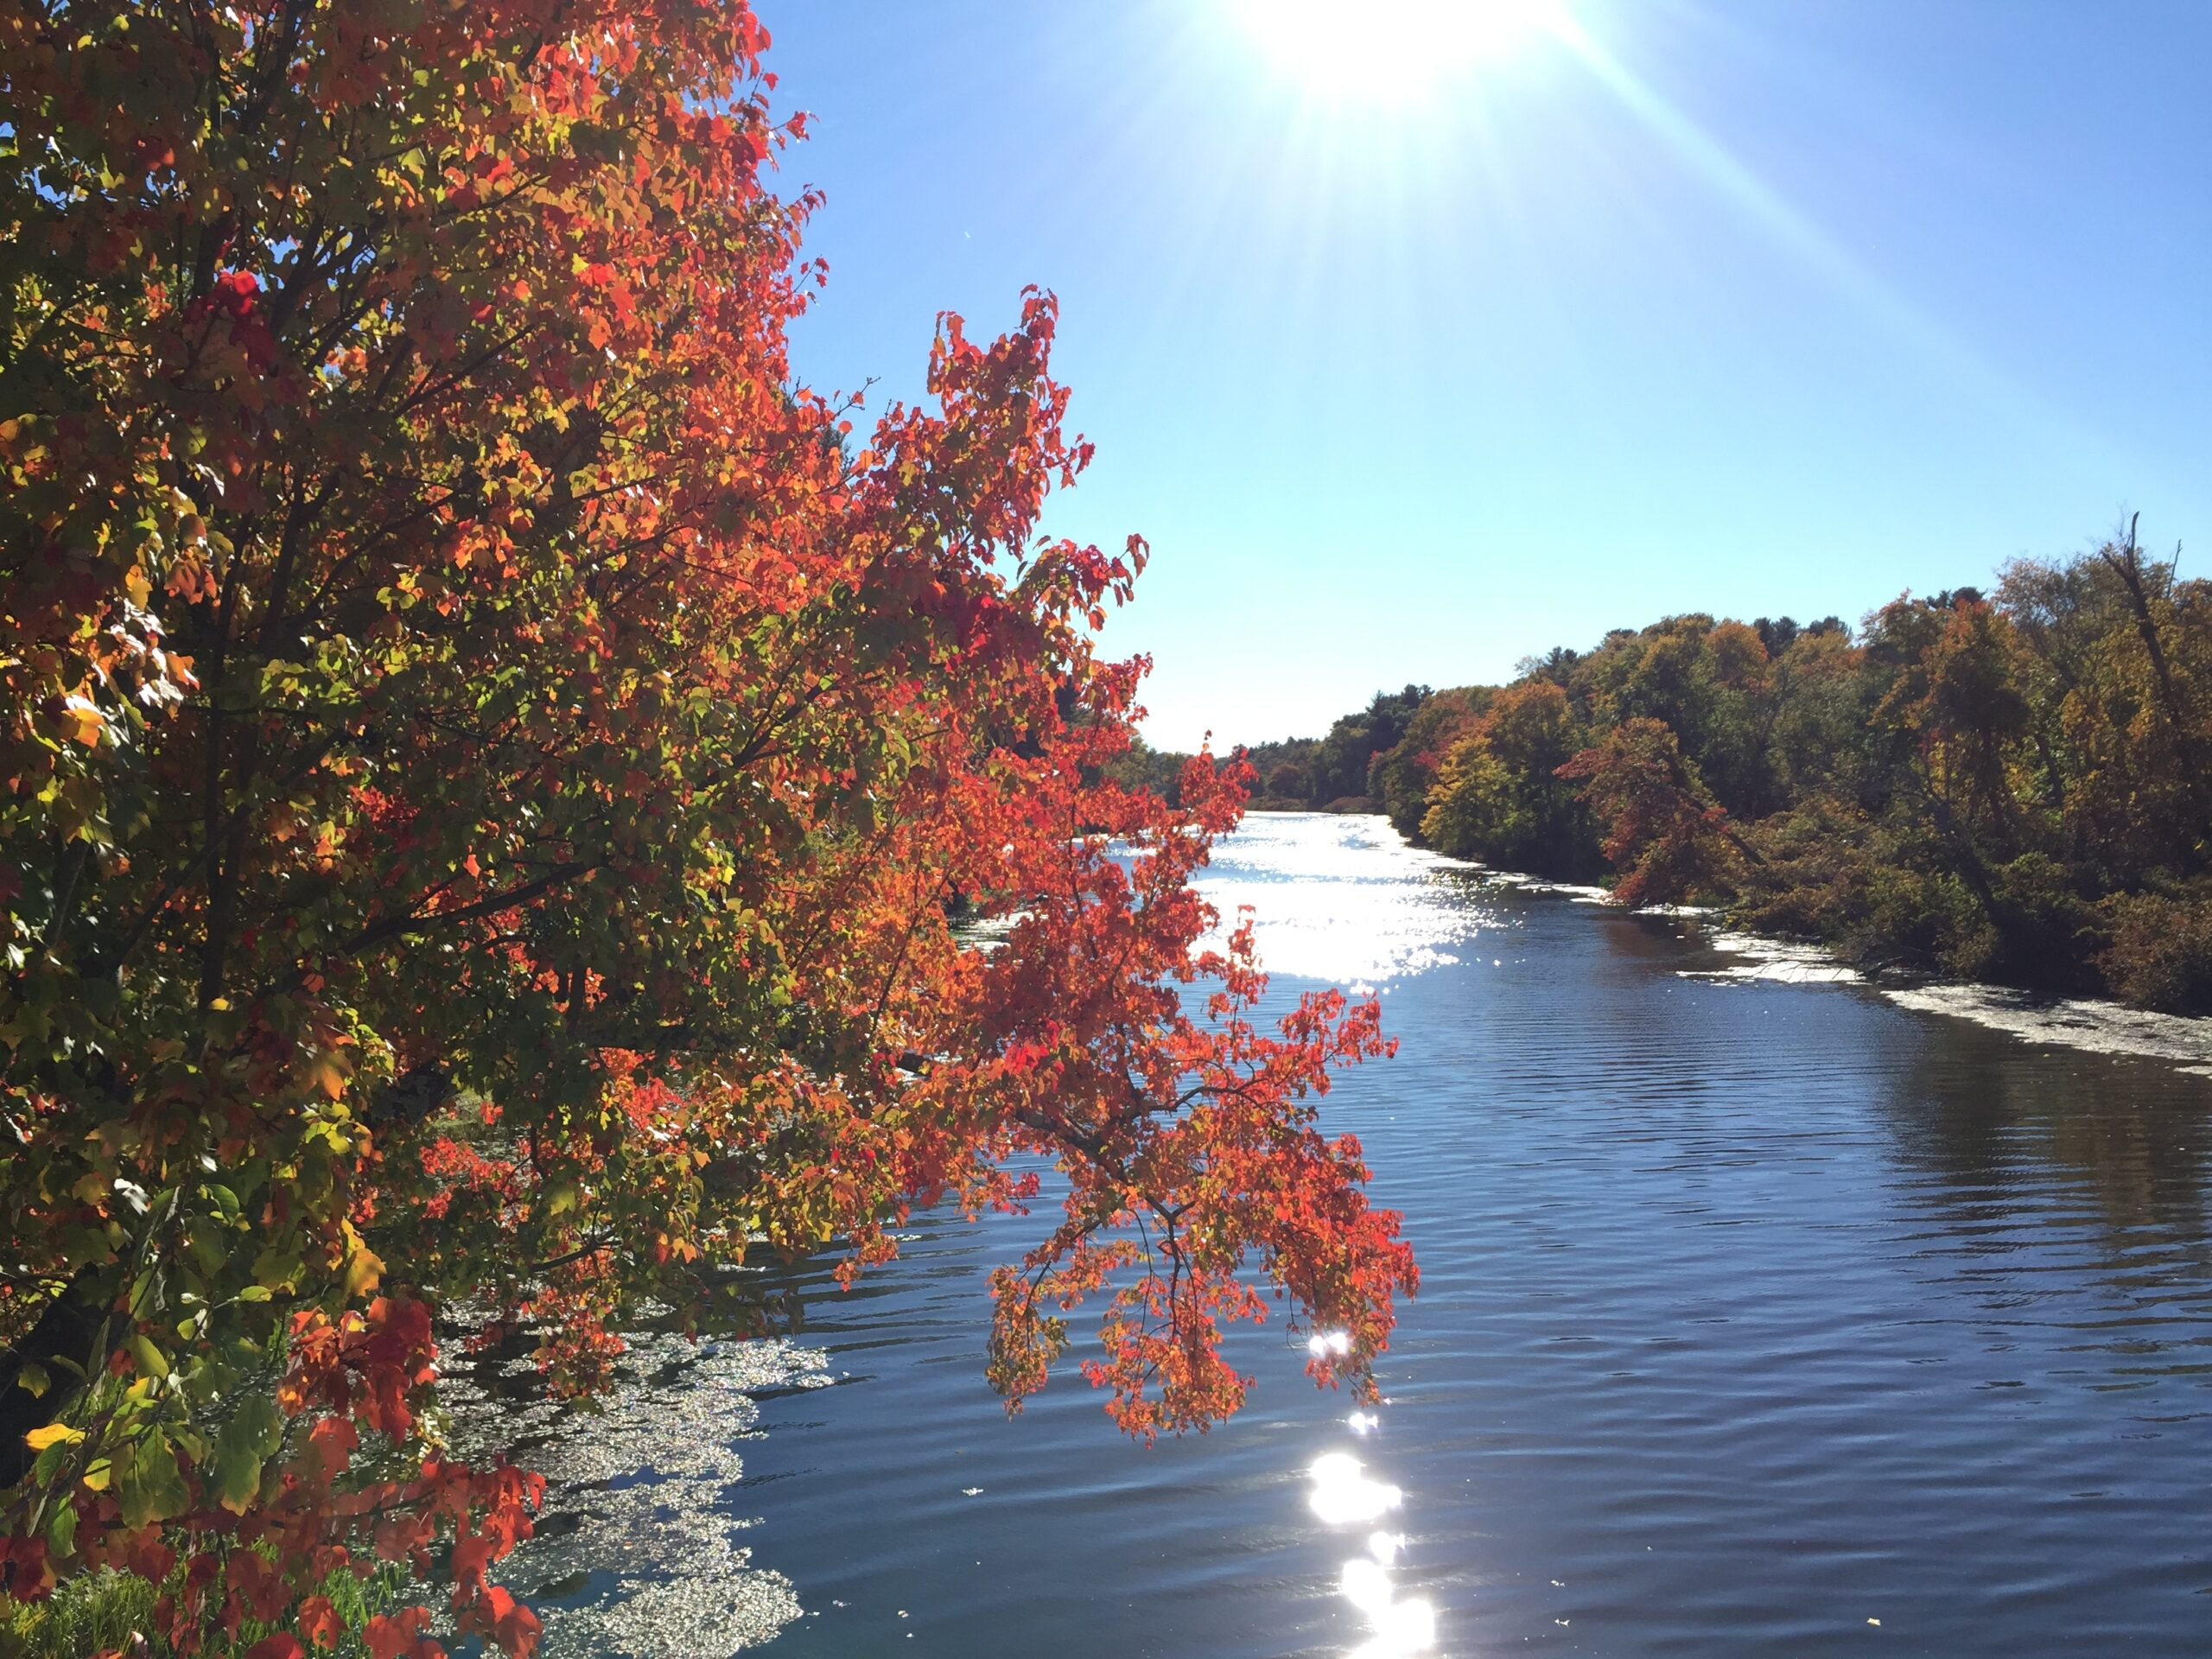 Fall foliage along the banks of the Charles River at Rocky Narrows